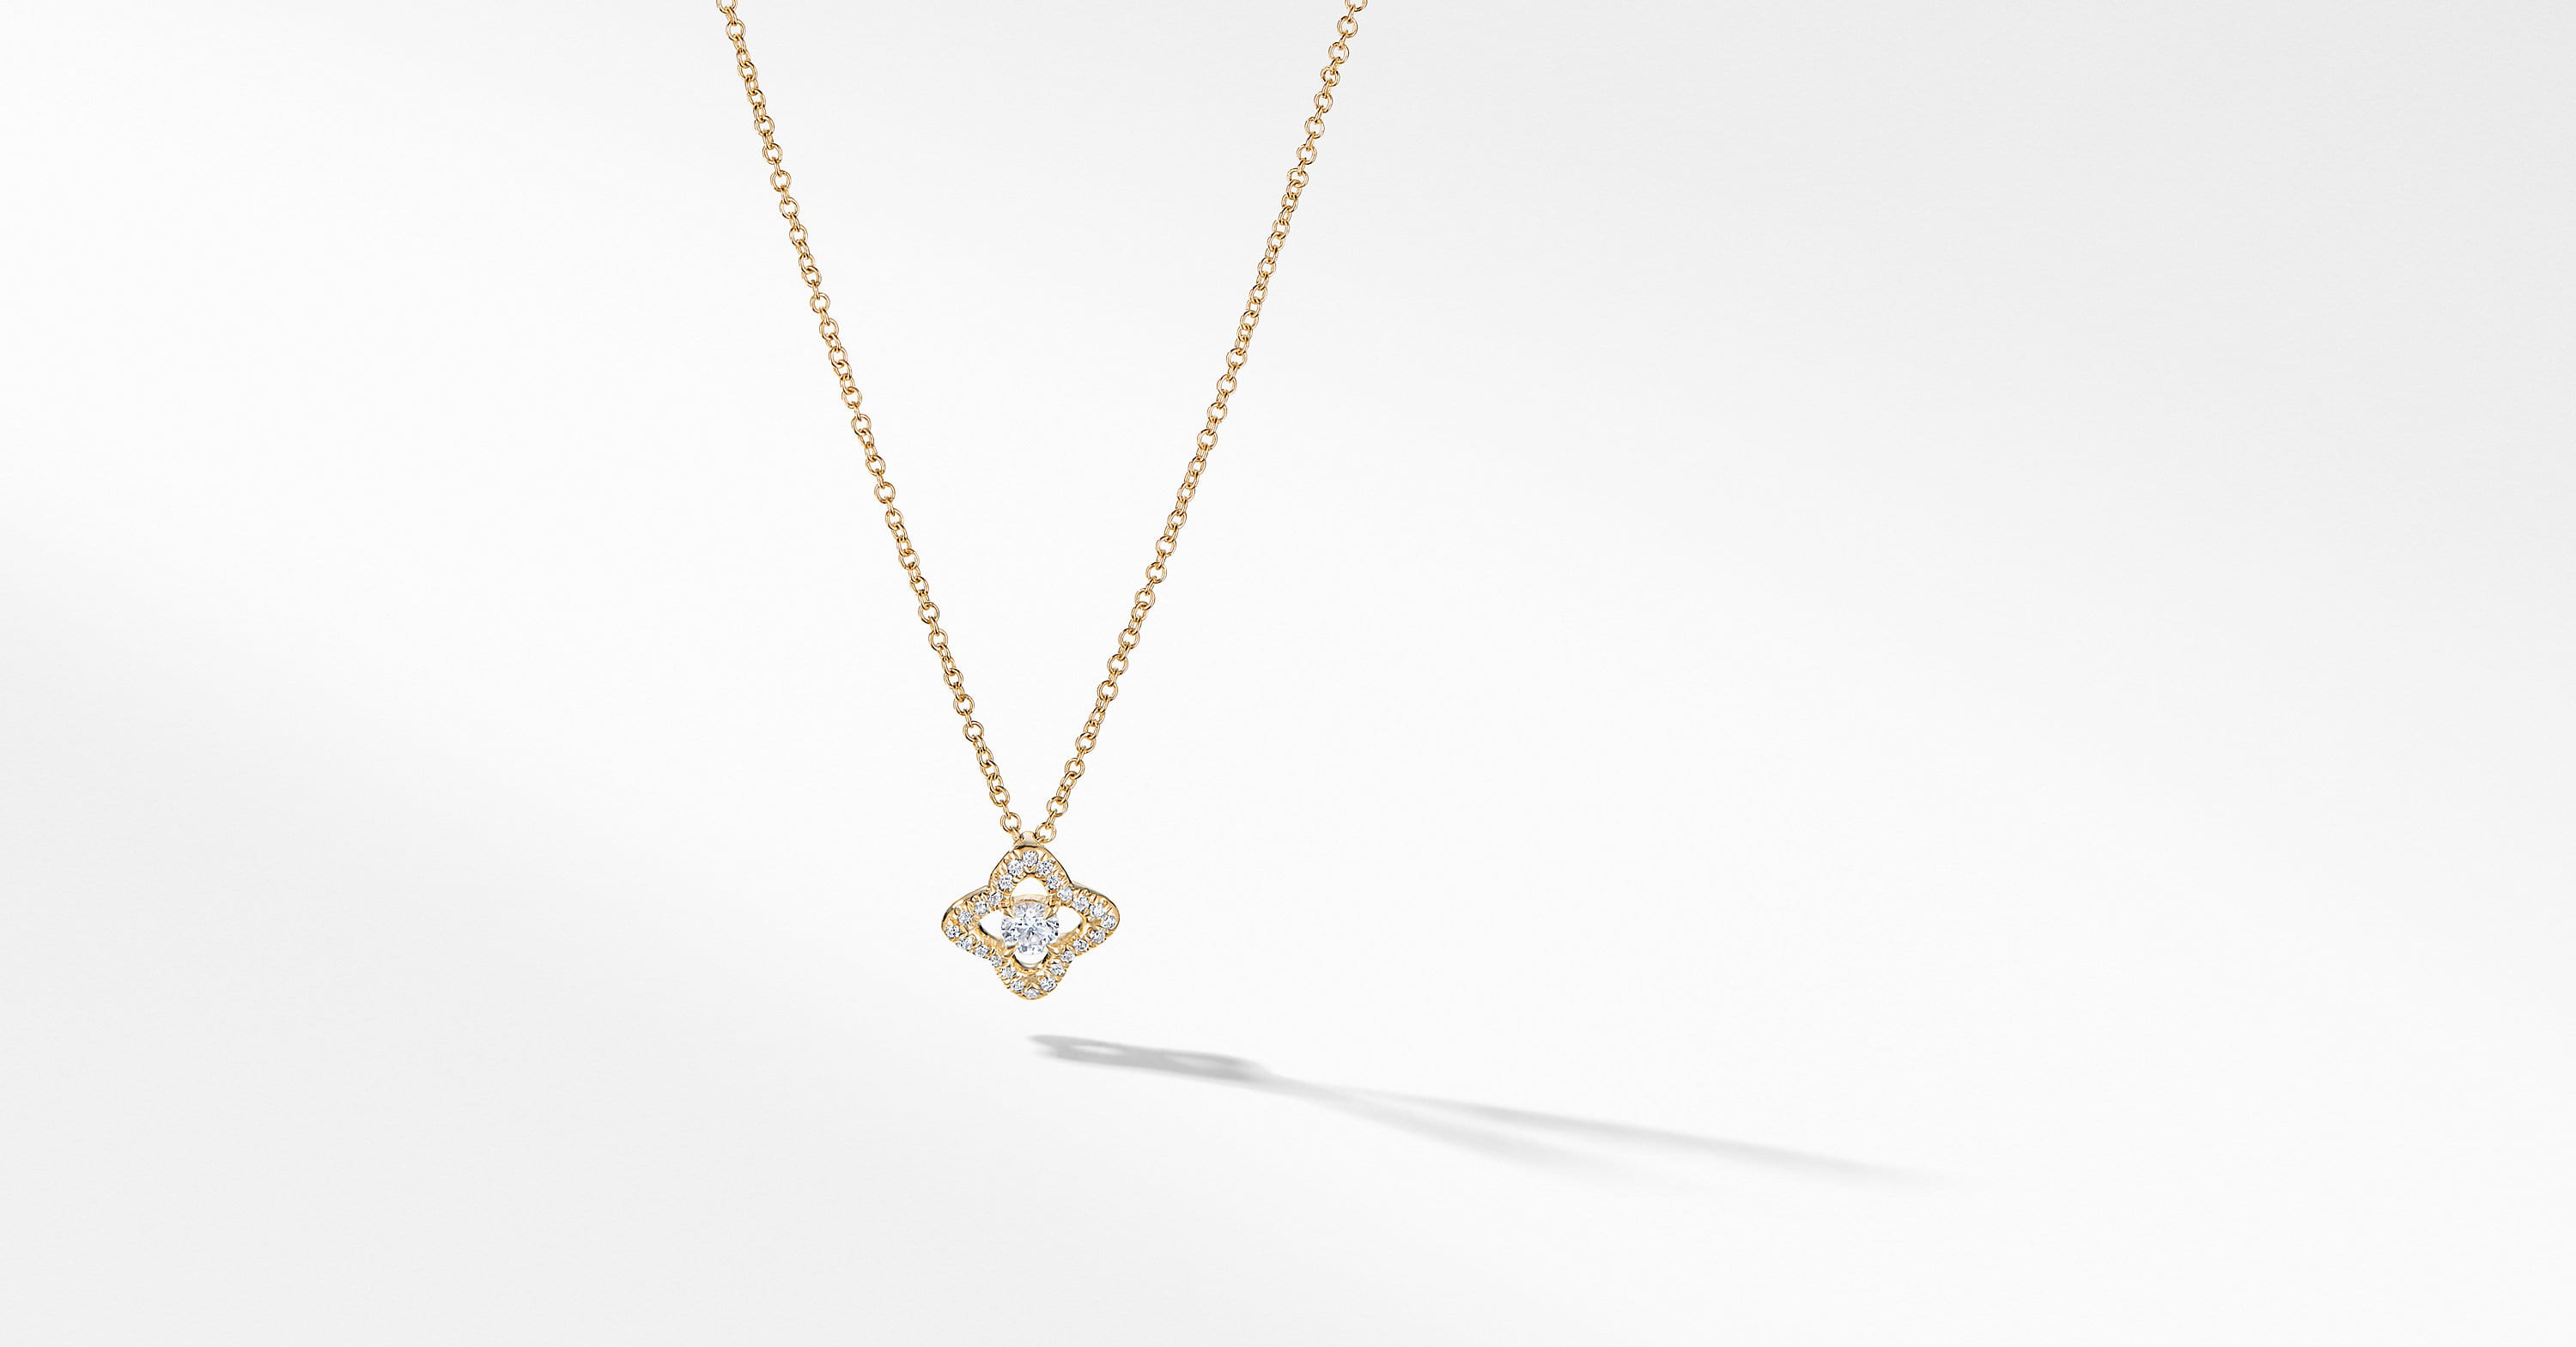 Collier Venetian Quatrefoil en or 18 carats et diamants